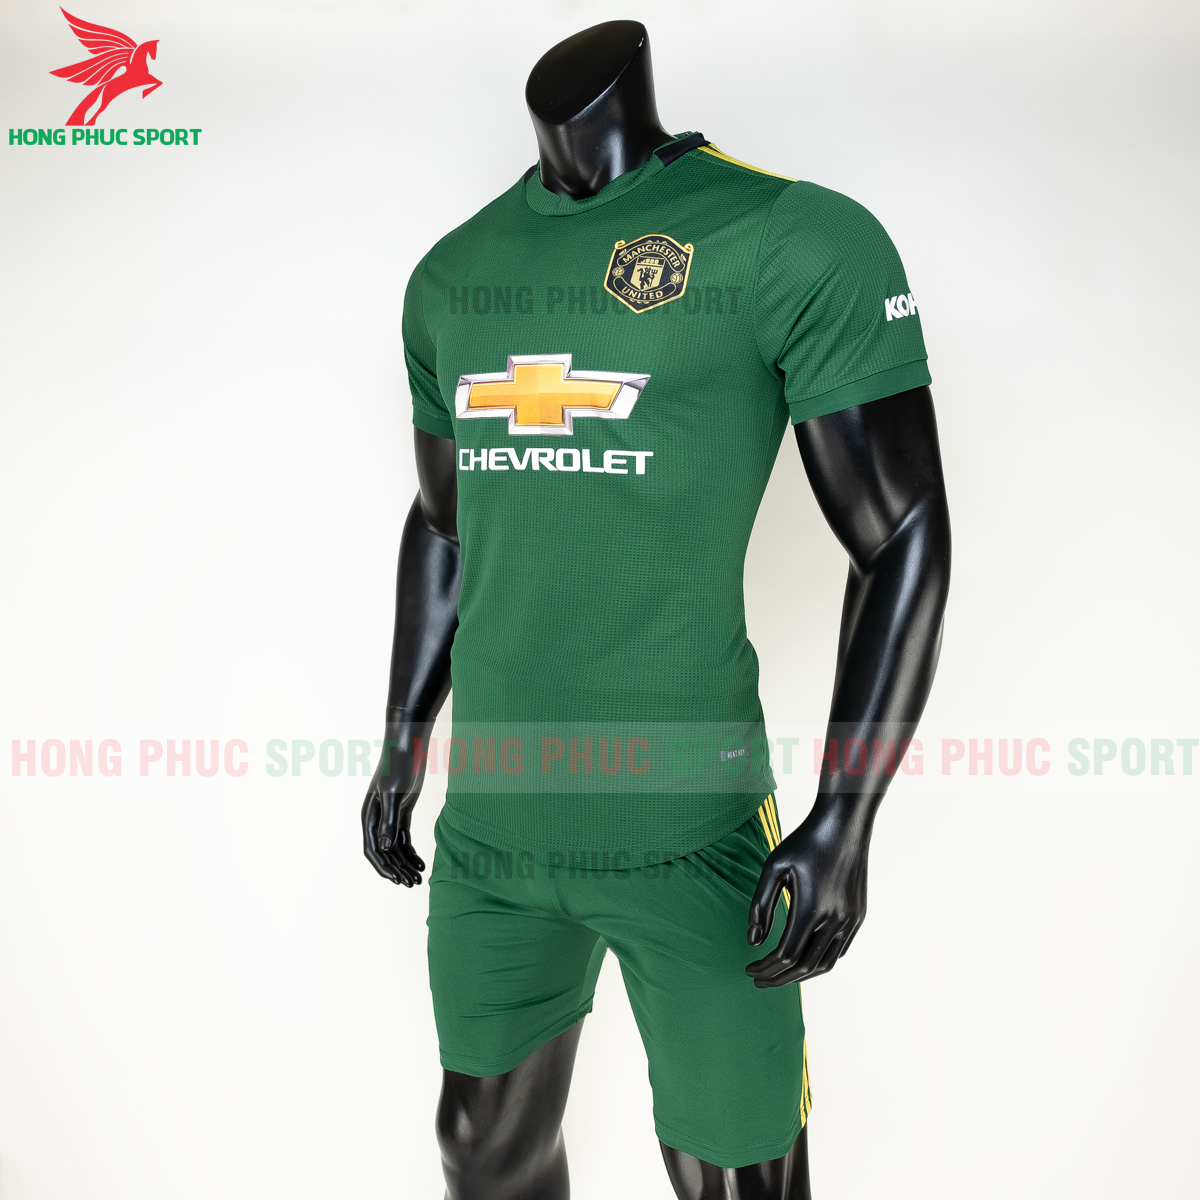 https://cdn.hongphucsport.com/unsafe/s4.shopbay.vn/files/285/ao-manchester-united-20-21-phien-ban-fan-hang-thailand-6-5fa0c0bd05d5f.png